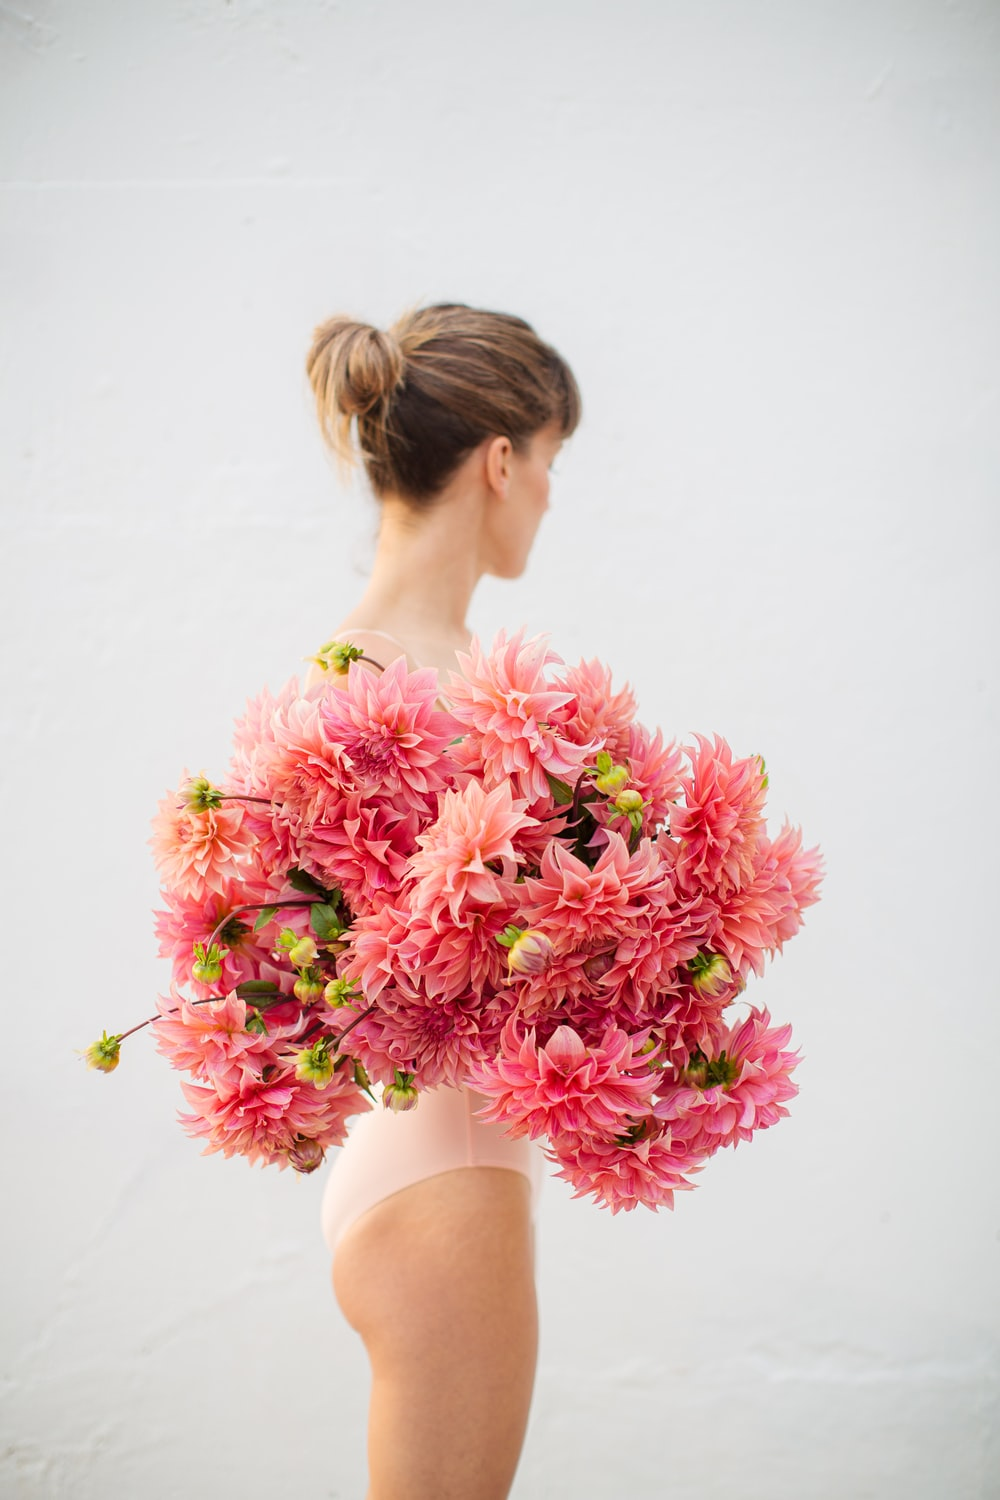 woman in white tank top holding pink flowers